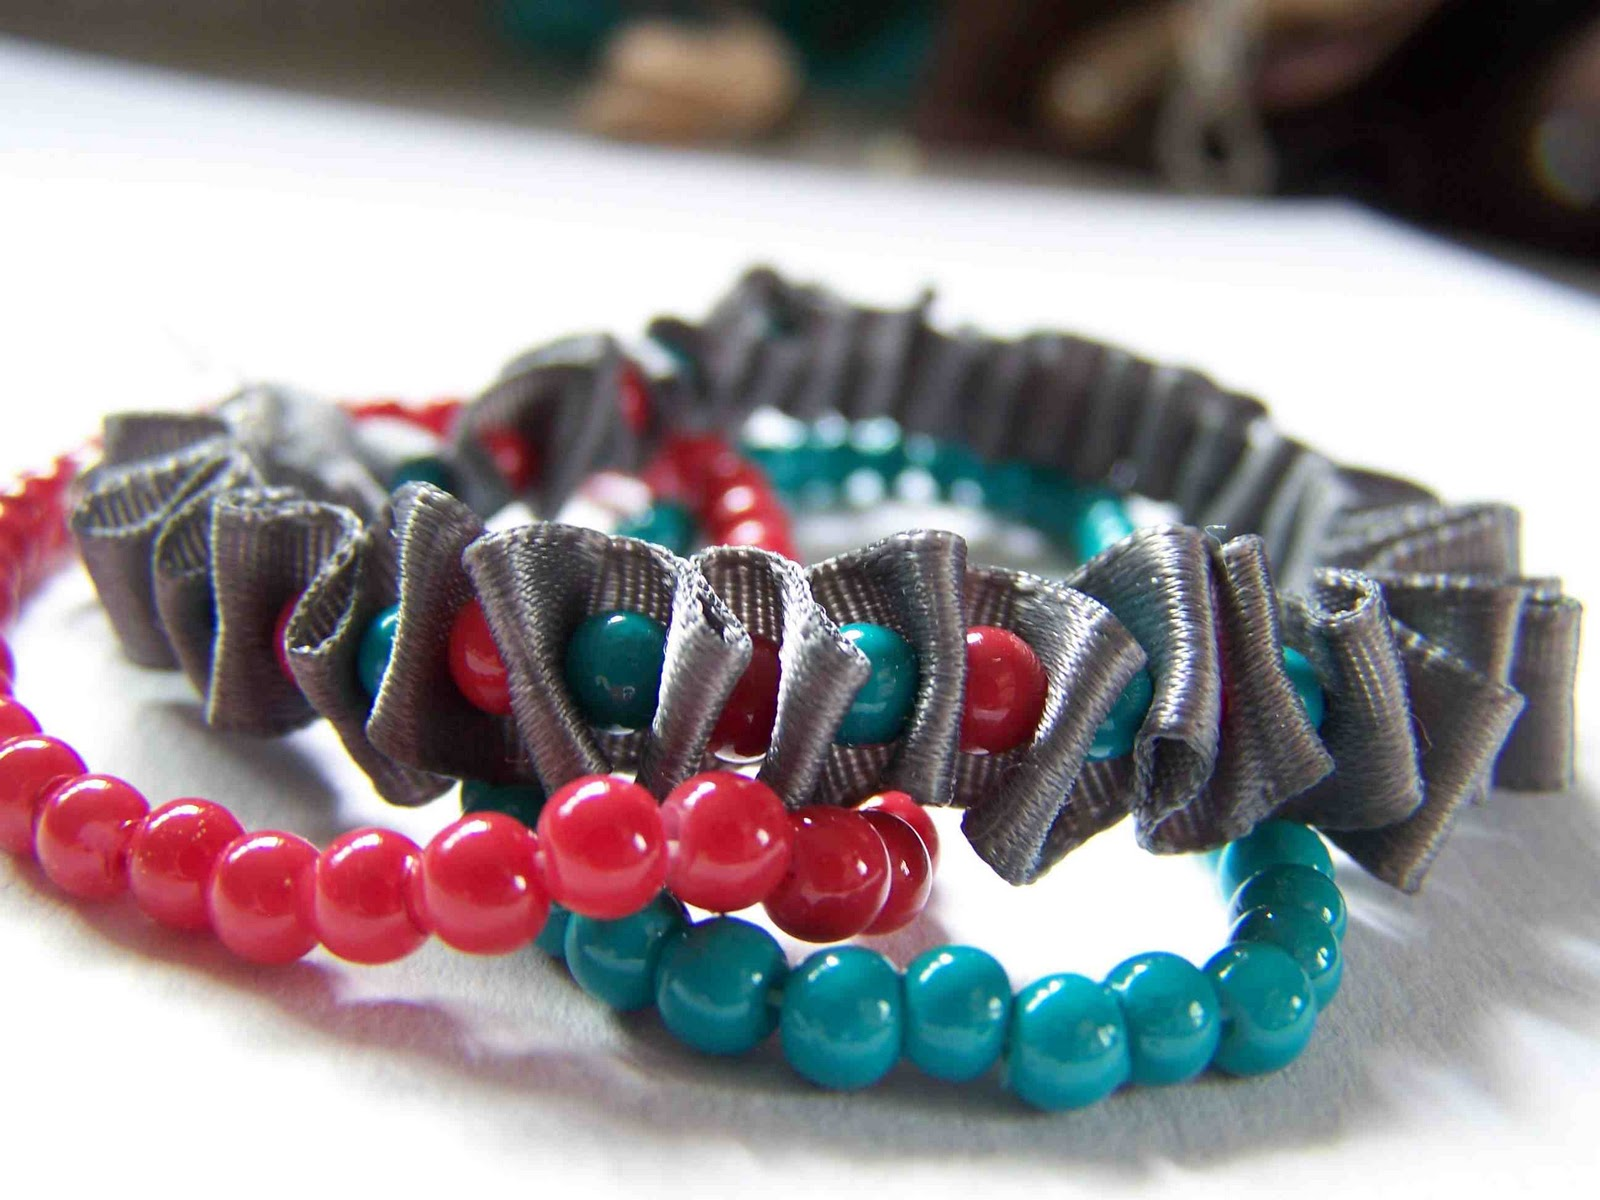 Bead  Jewelry Projects - Better Homes and Gardens